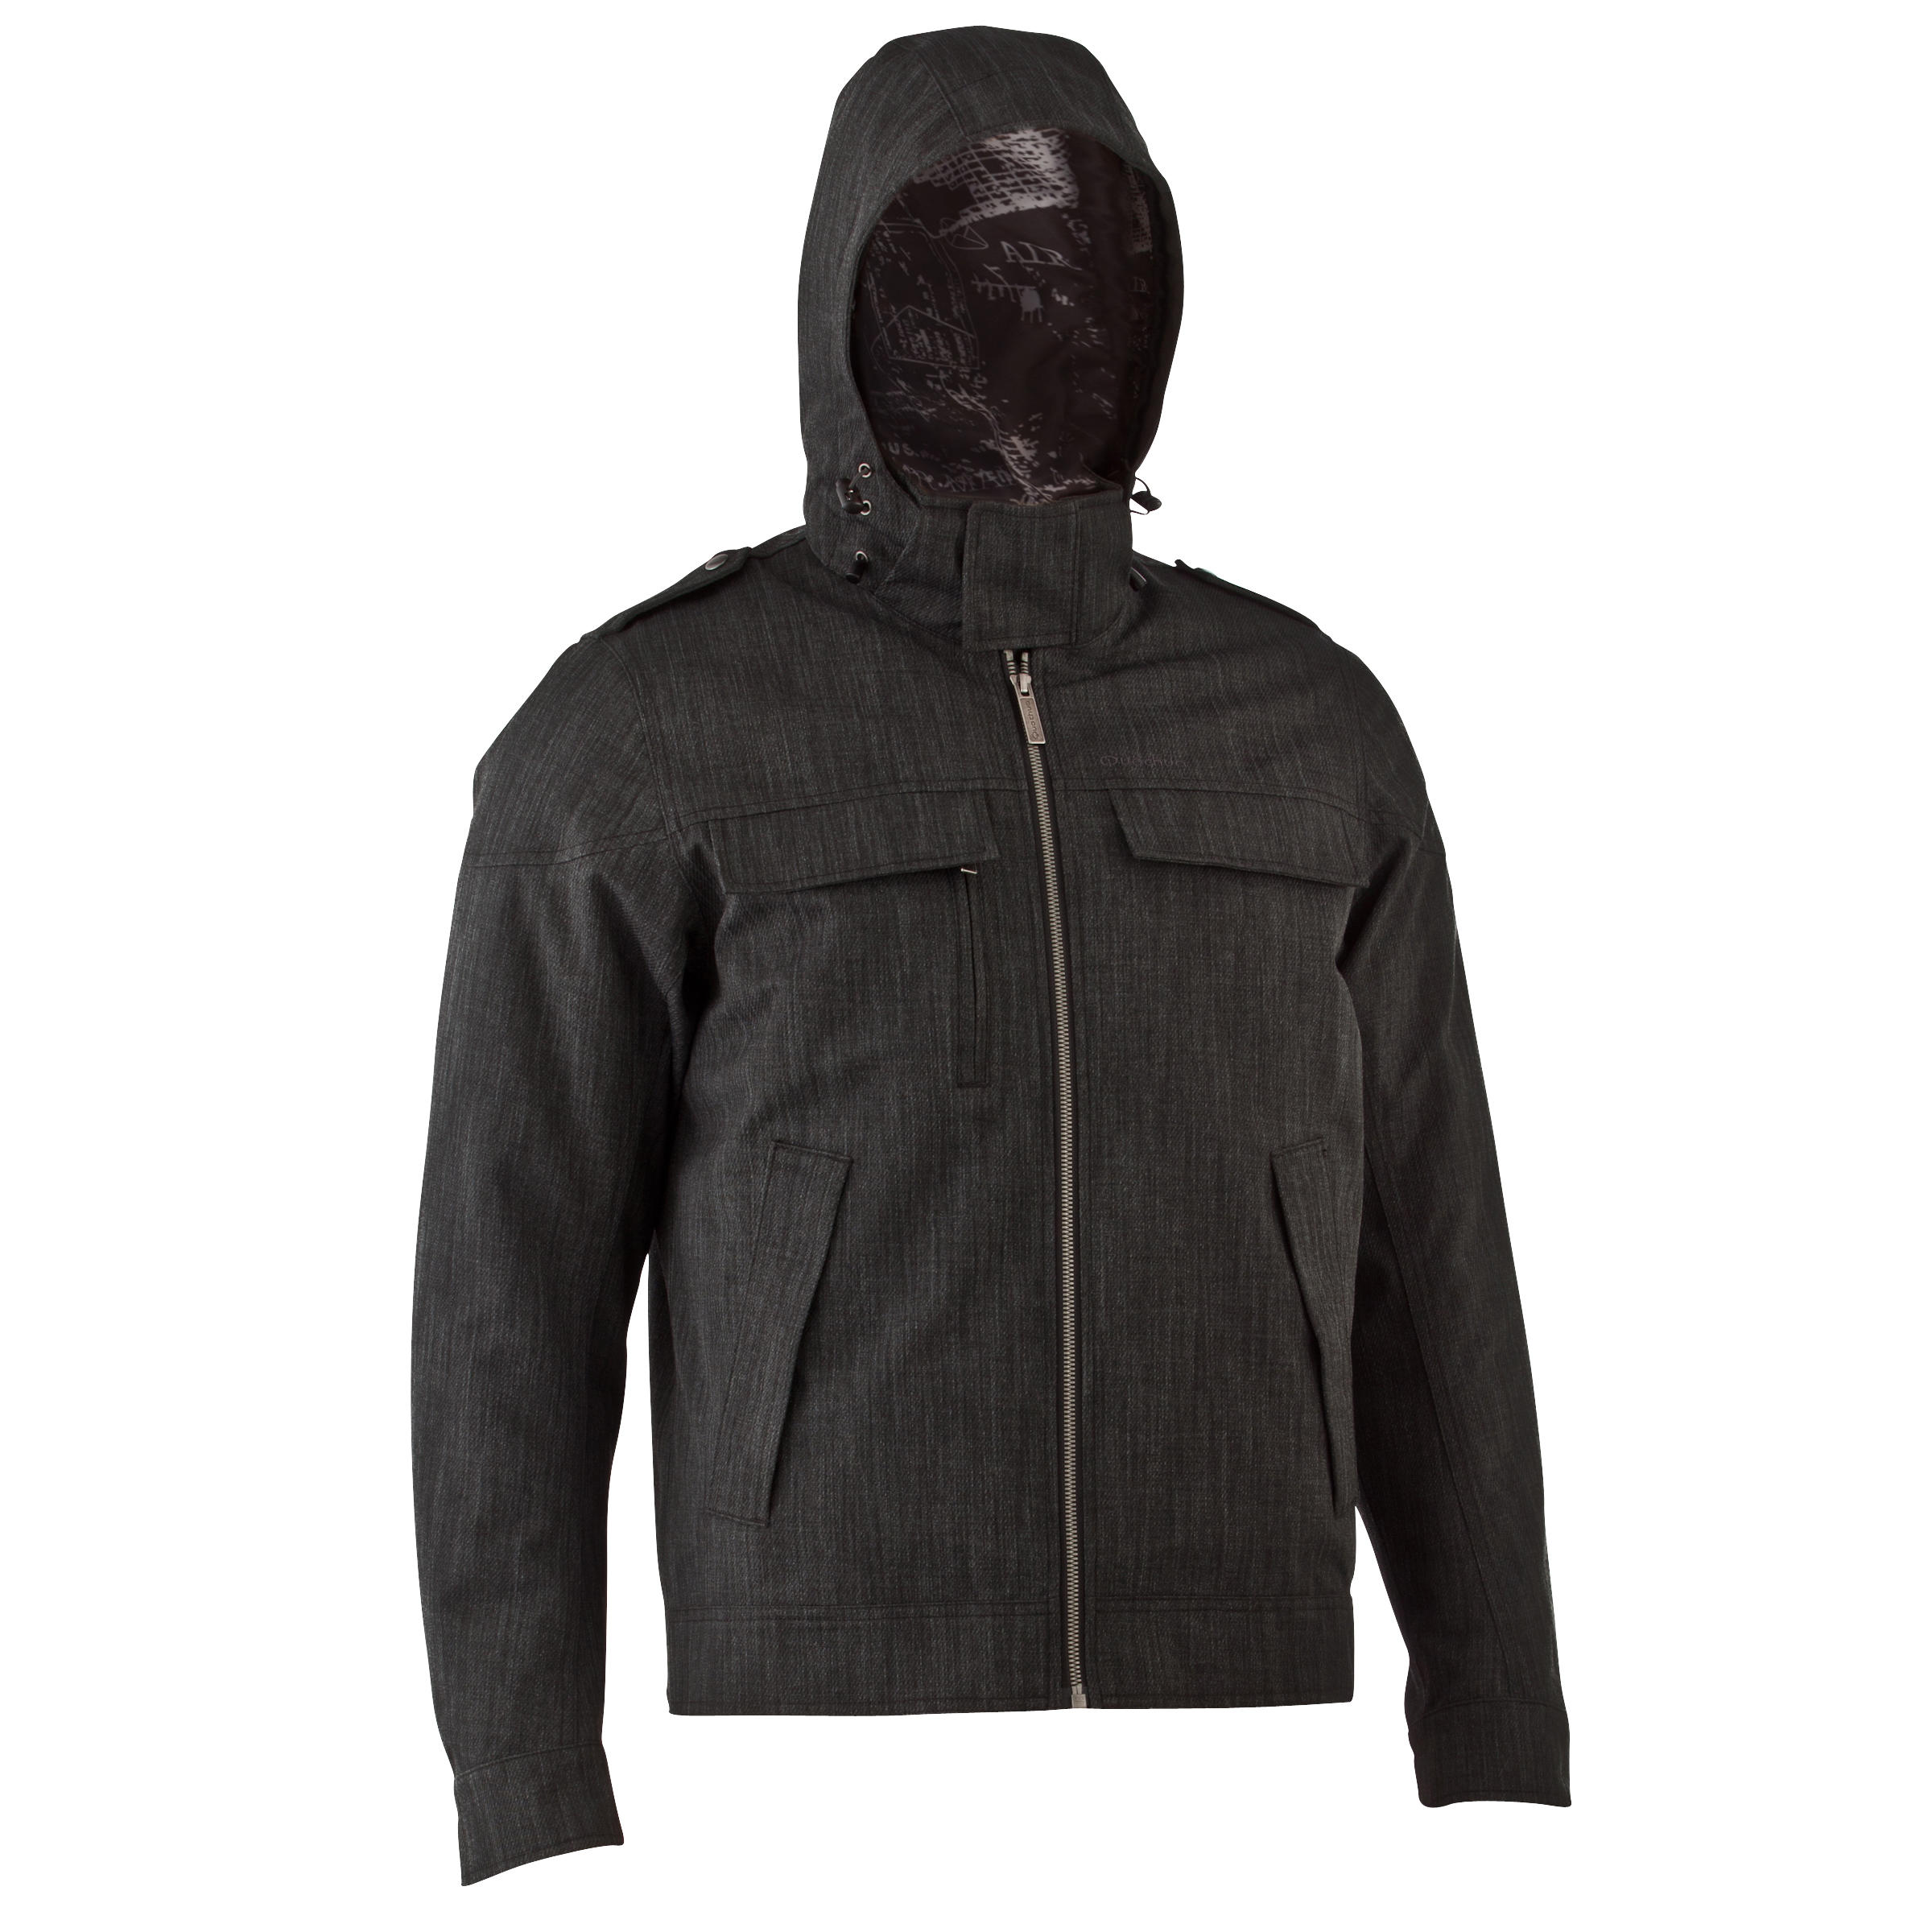 SH500 X-Warm Men's Snow Hiking Jacket - Charcoal Grey.